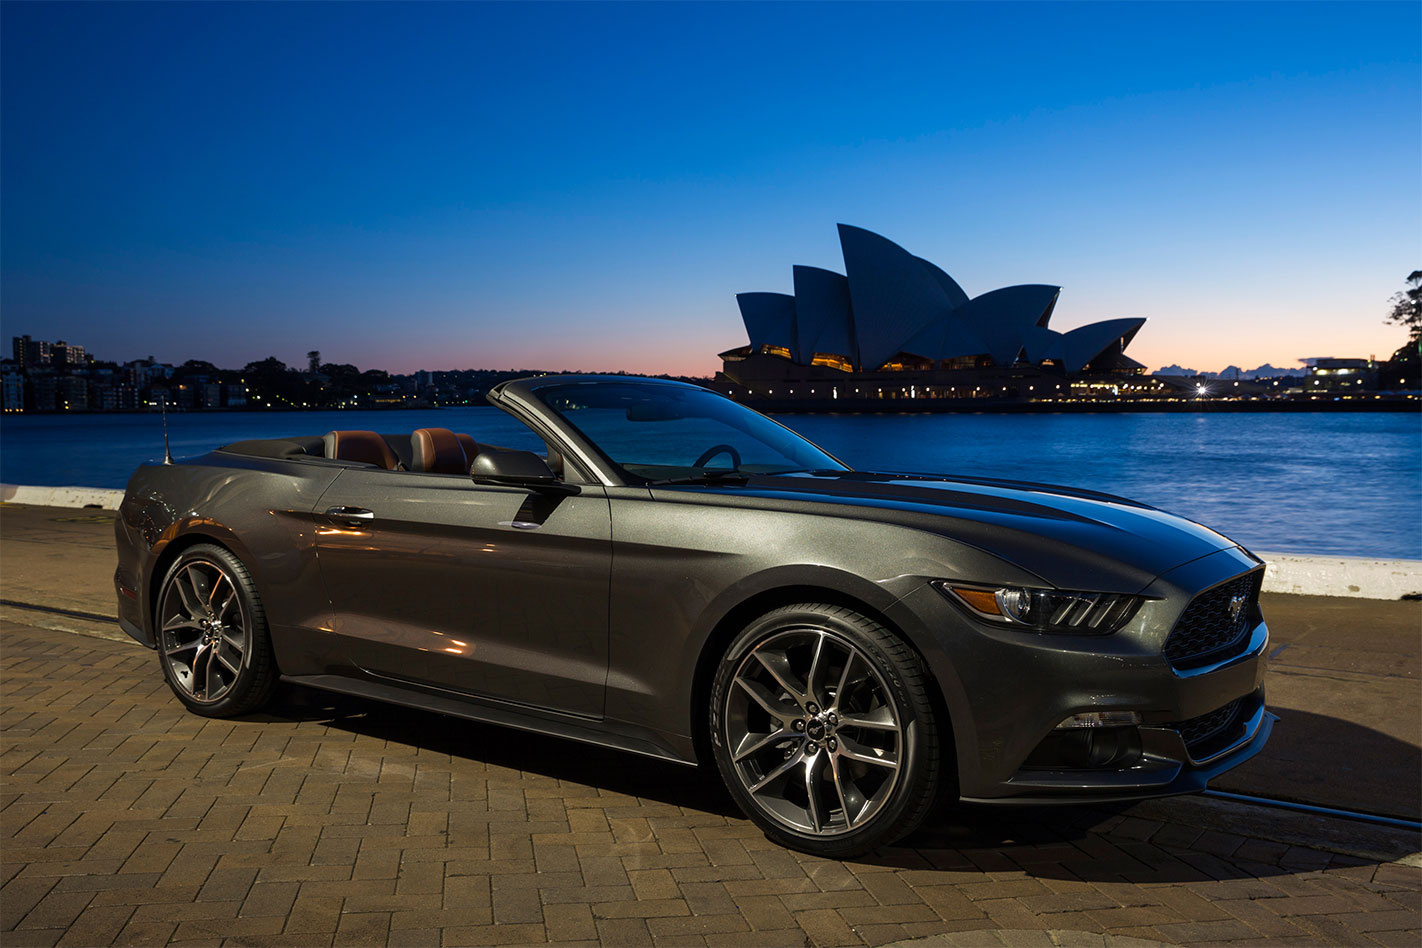 Ford -Mustang -convertible -Opera -house